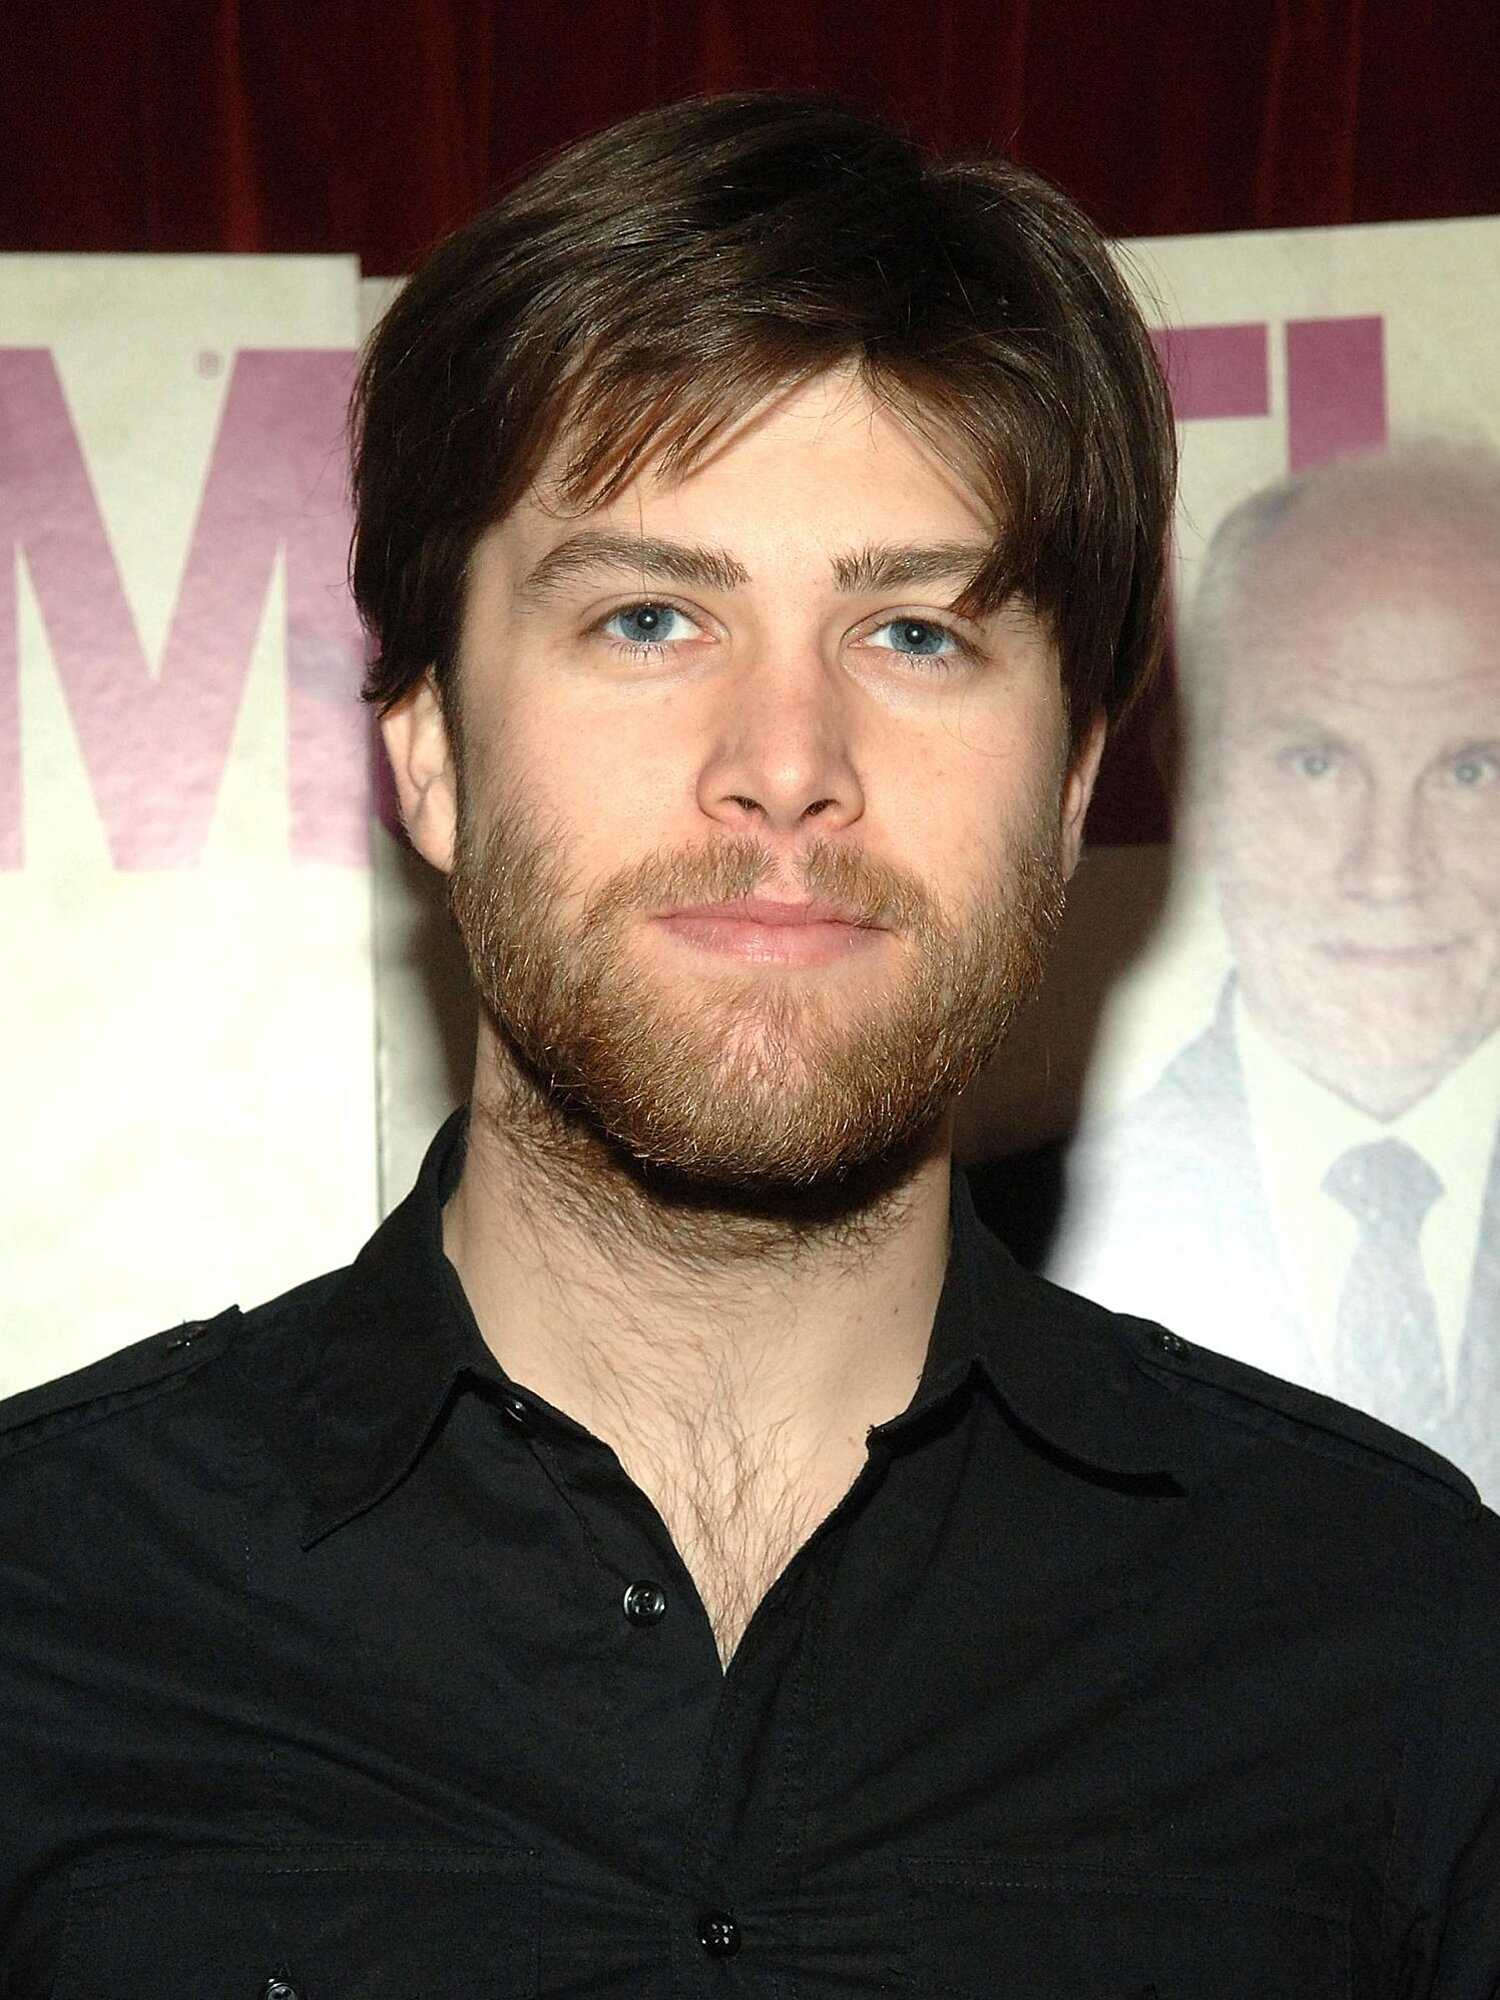 Snl Weekend Update Anchor Colin Jost Is Unrecognizable With A Beard Ew Com